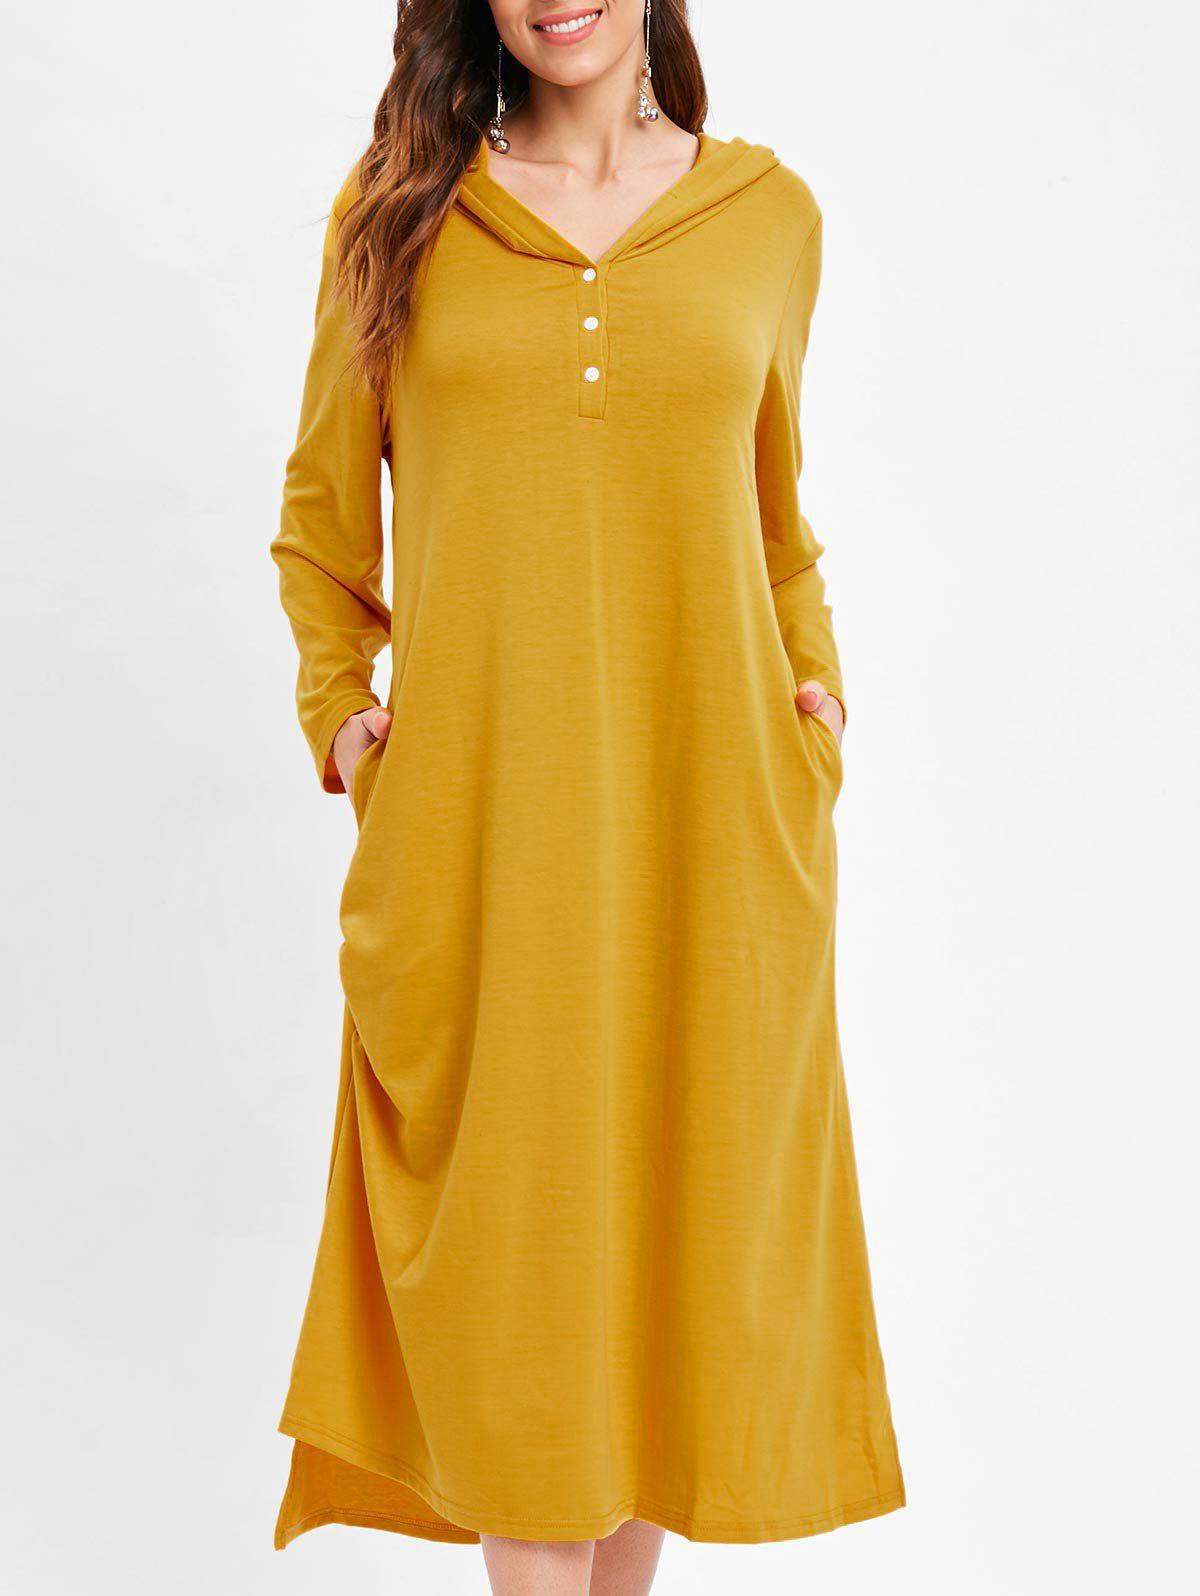 Pocket Hooded Tunic Mid Dress - YELLOW 2XL